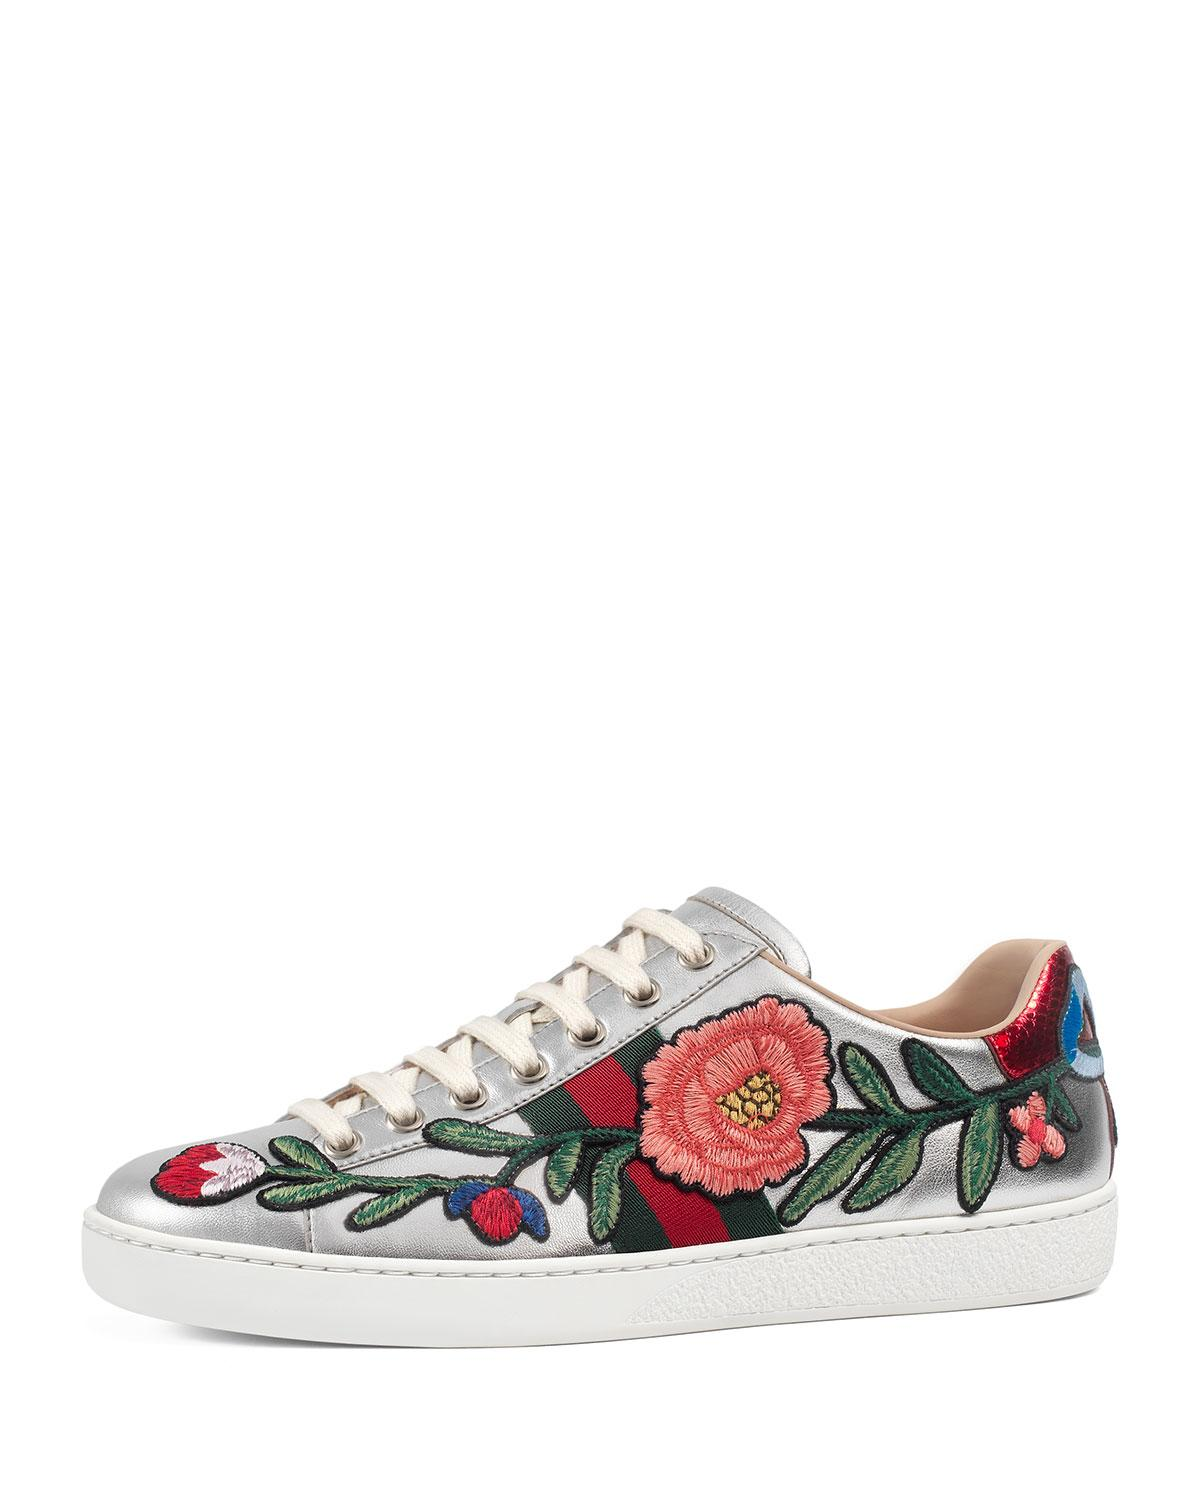 Gucci New Ace Floral Leather Sneaker In Metallic Lyst